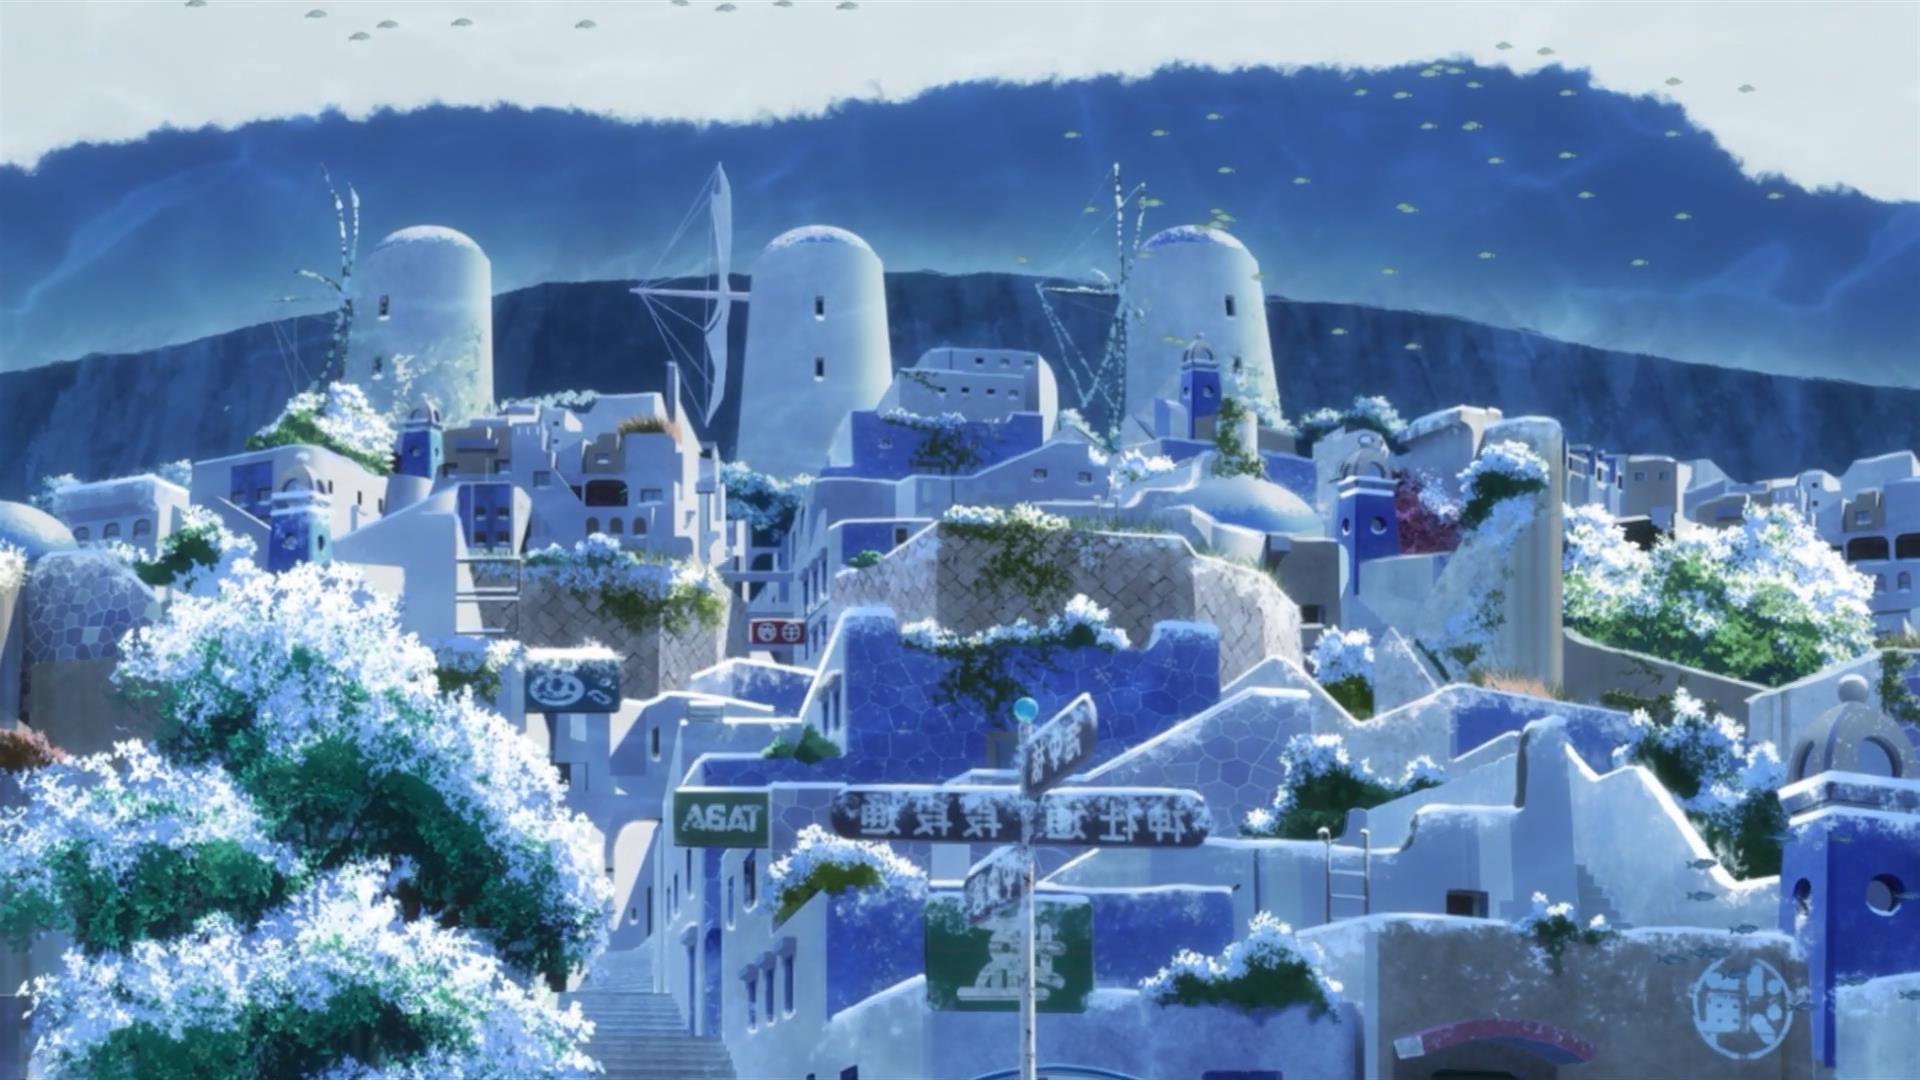 Funny Desktop Wallpaper Hd City Nagi No Asukara Wallpapers Hd Desktop And Mobile